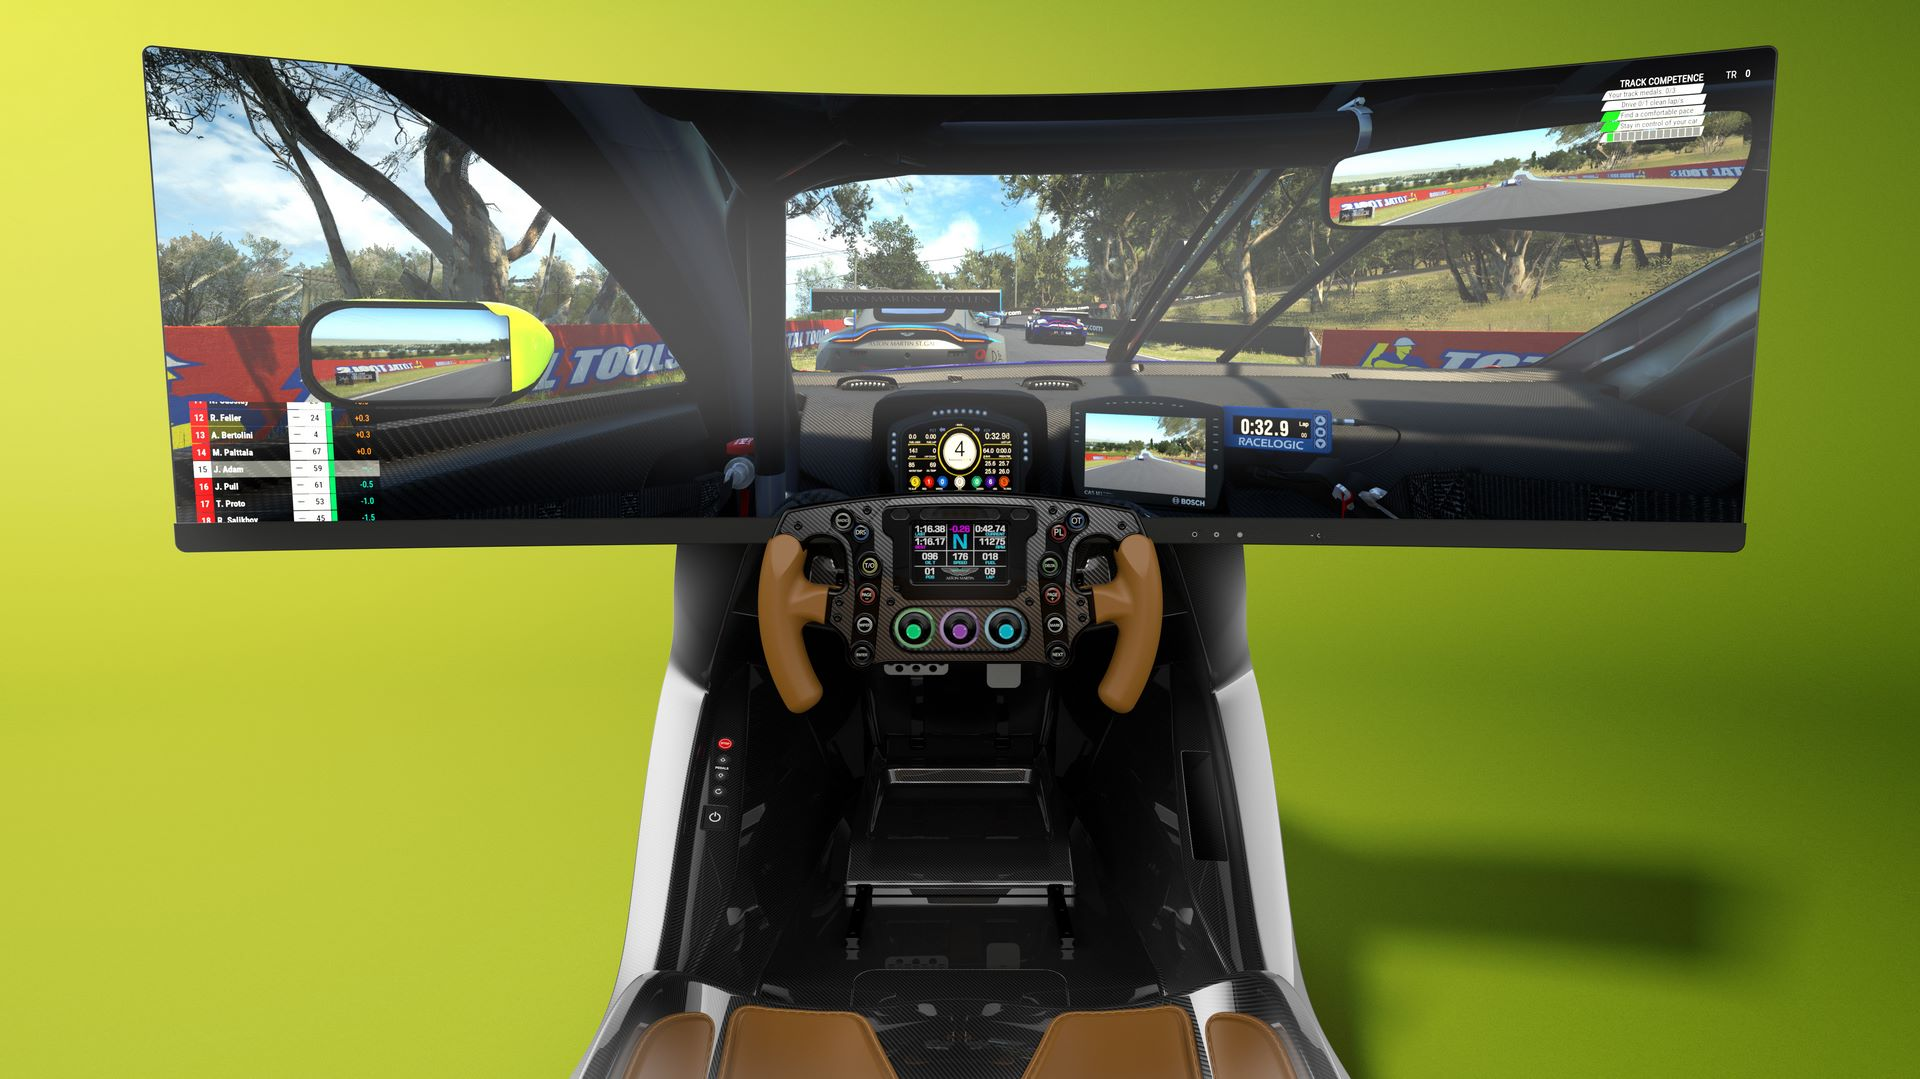 Aston-Martin-AMR-C01-racing-simulator-7